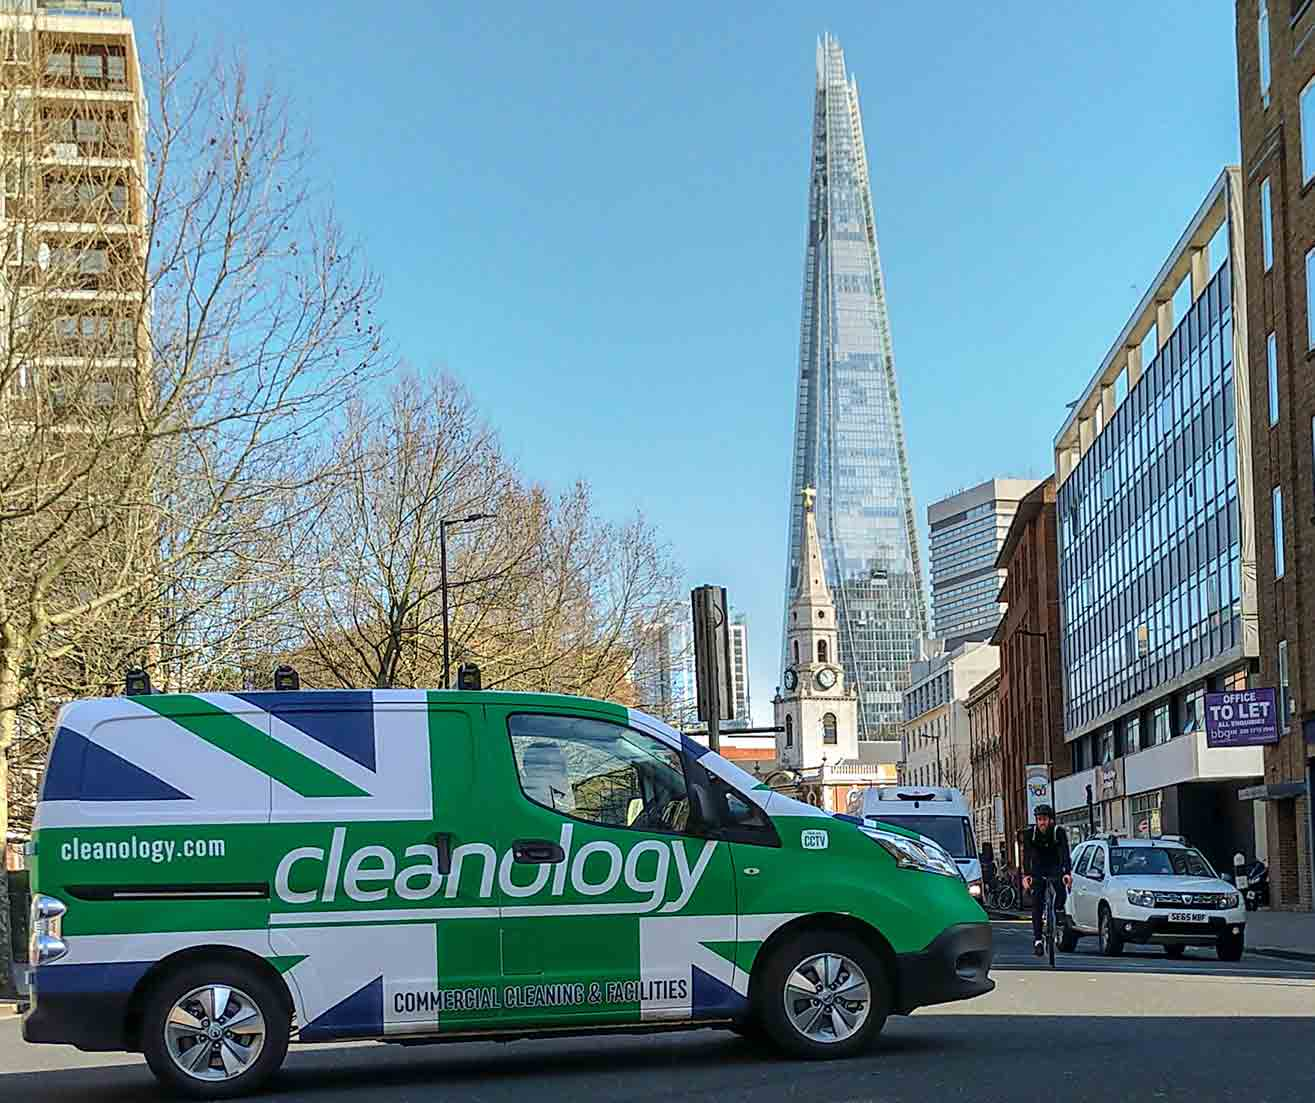 Cleanology's Latest Feature | ThisWeekInFM.com